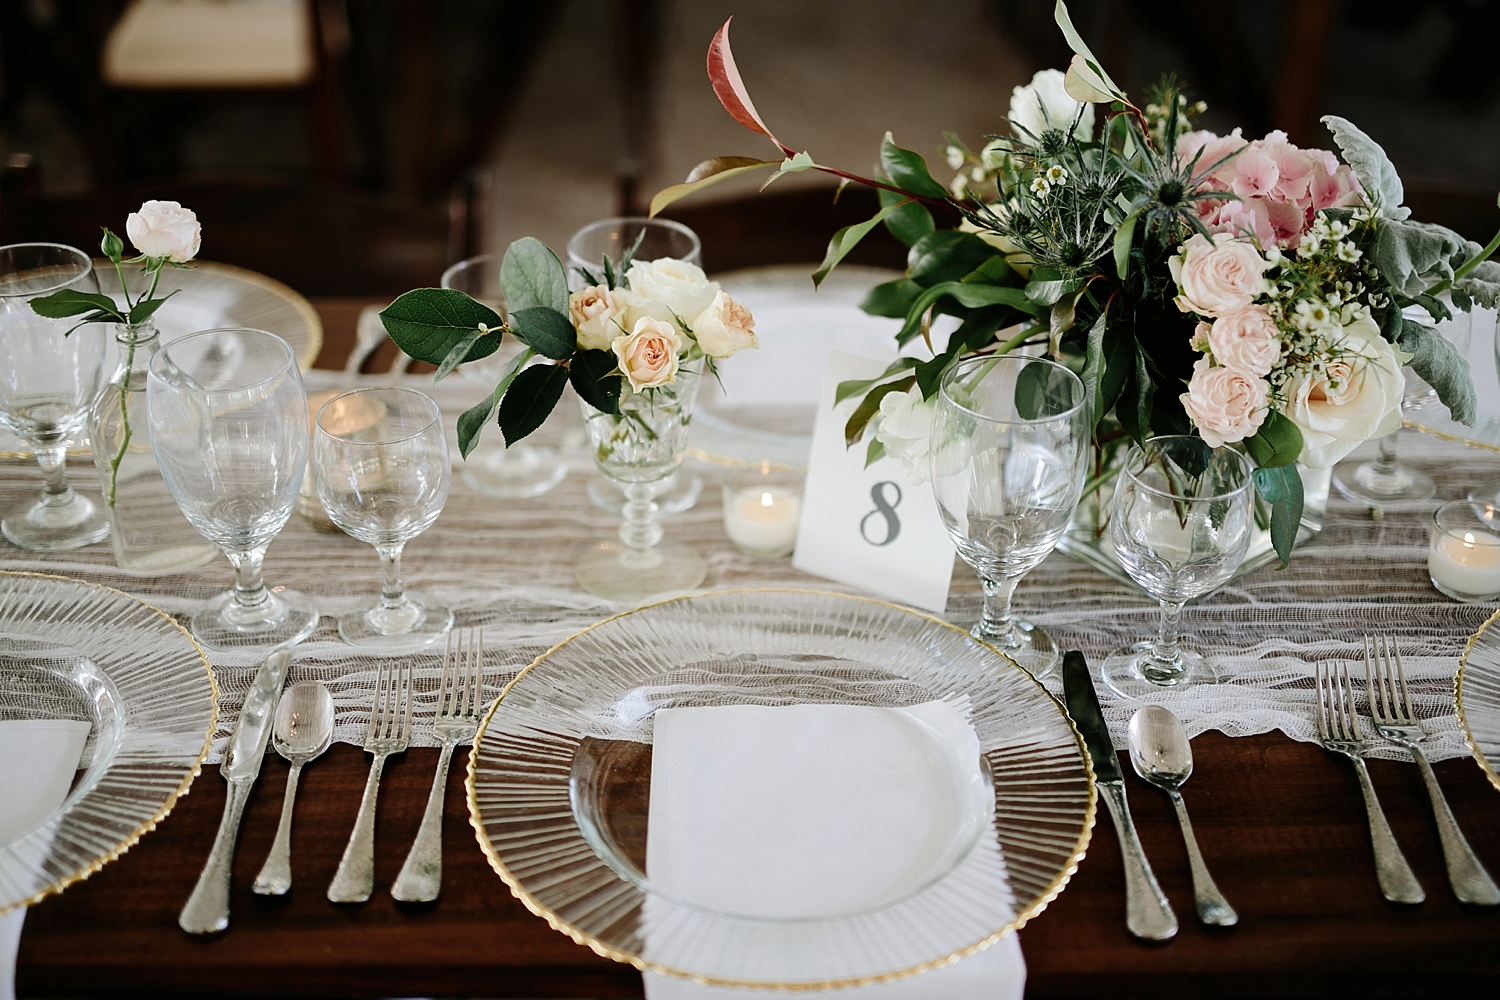 gold rimmed plates with silver silverware